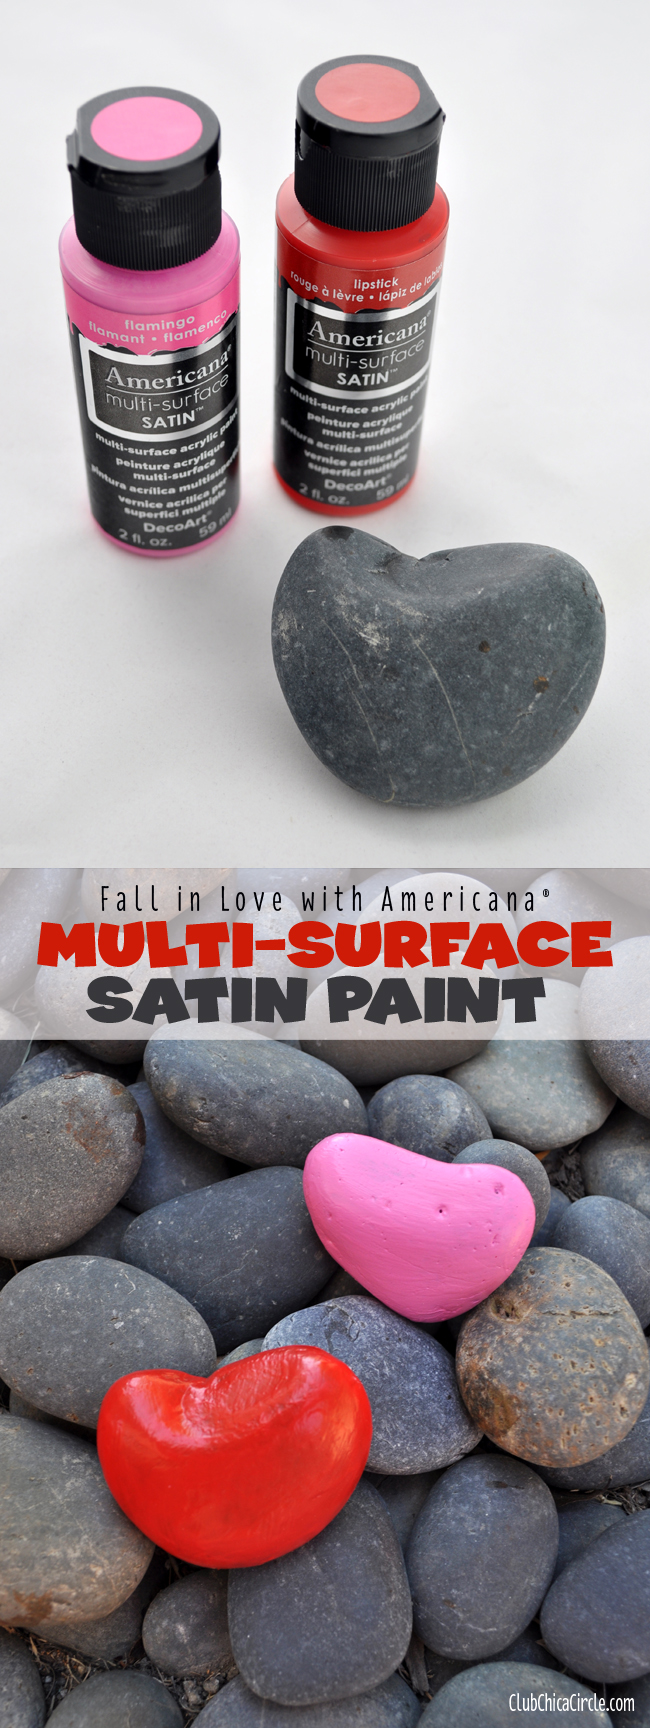 Americana Multi-surface heart shaped painted rocks